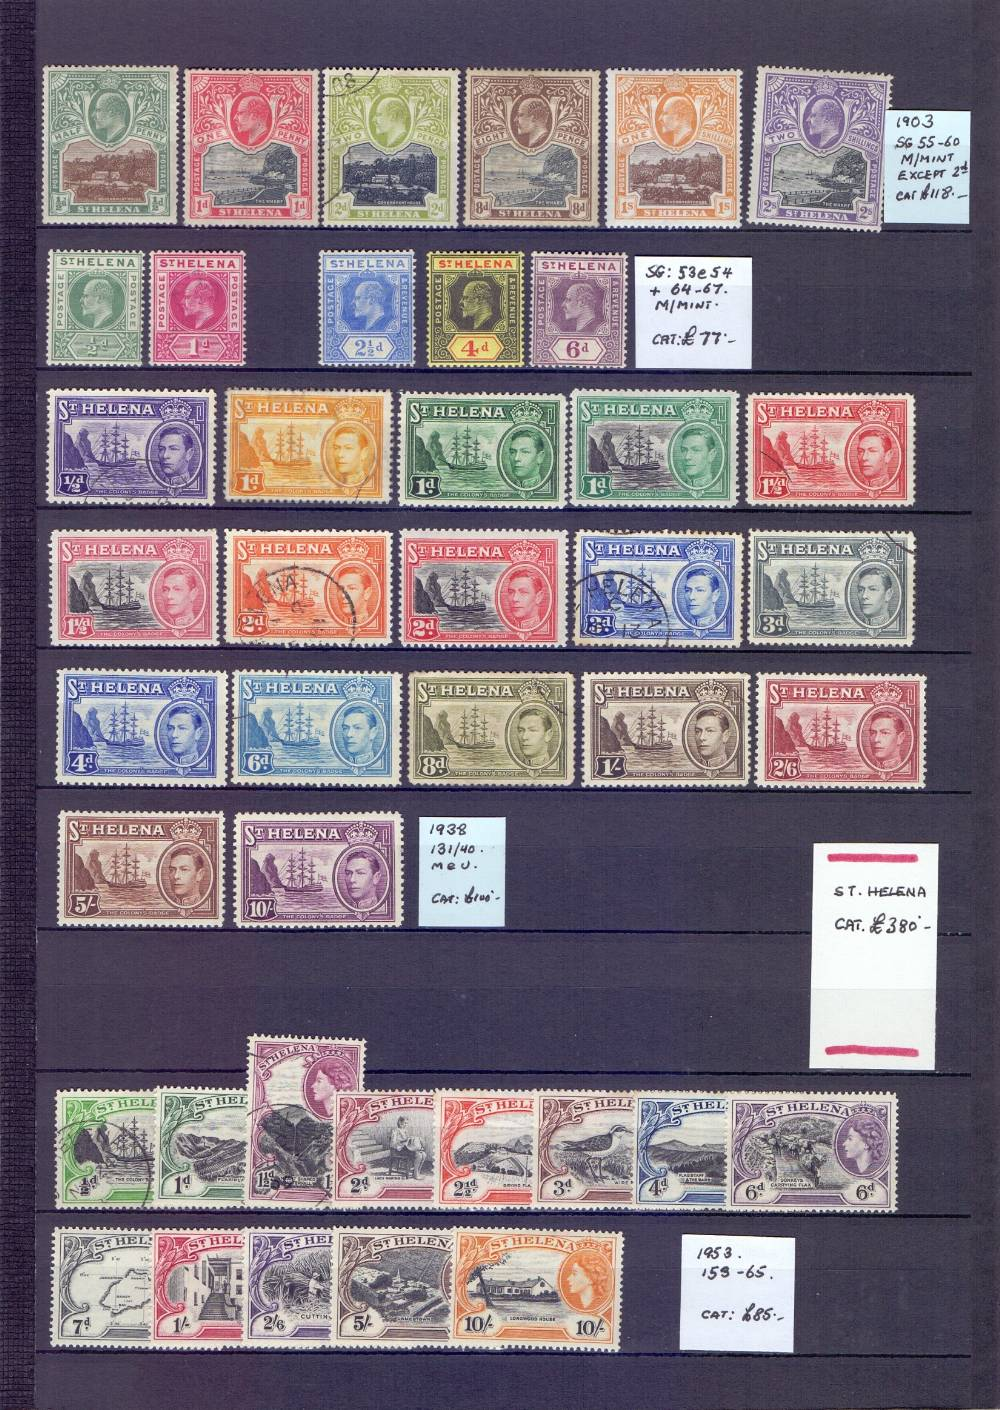 Lot 15 - STAMPS : BRITISH COMMONWEALTH, South Atlantic; collection of Ascension with 1924 GV set to 3/- mint,